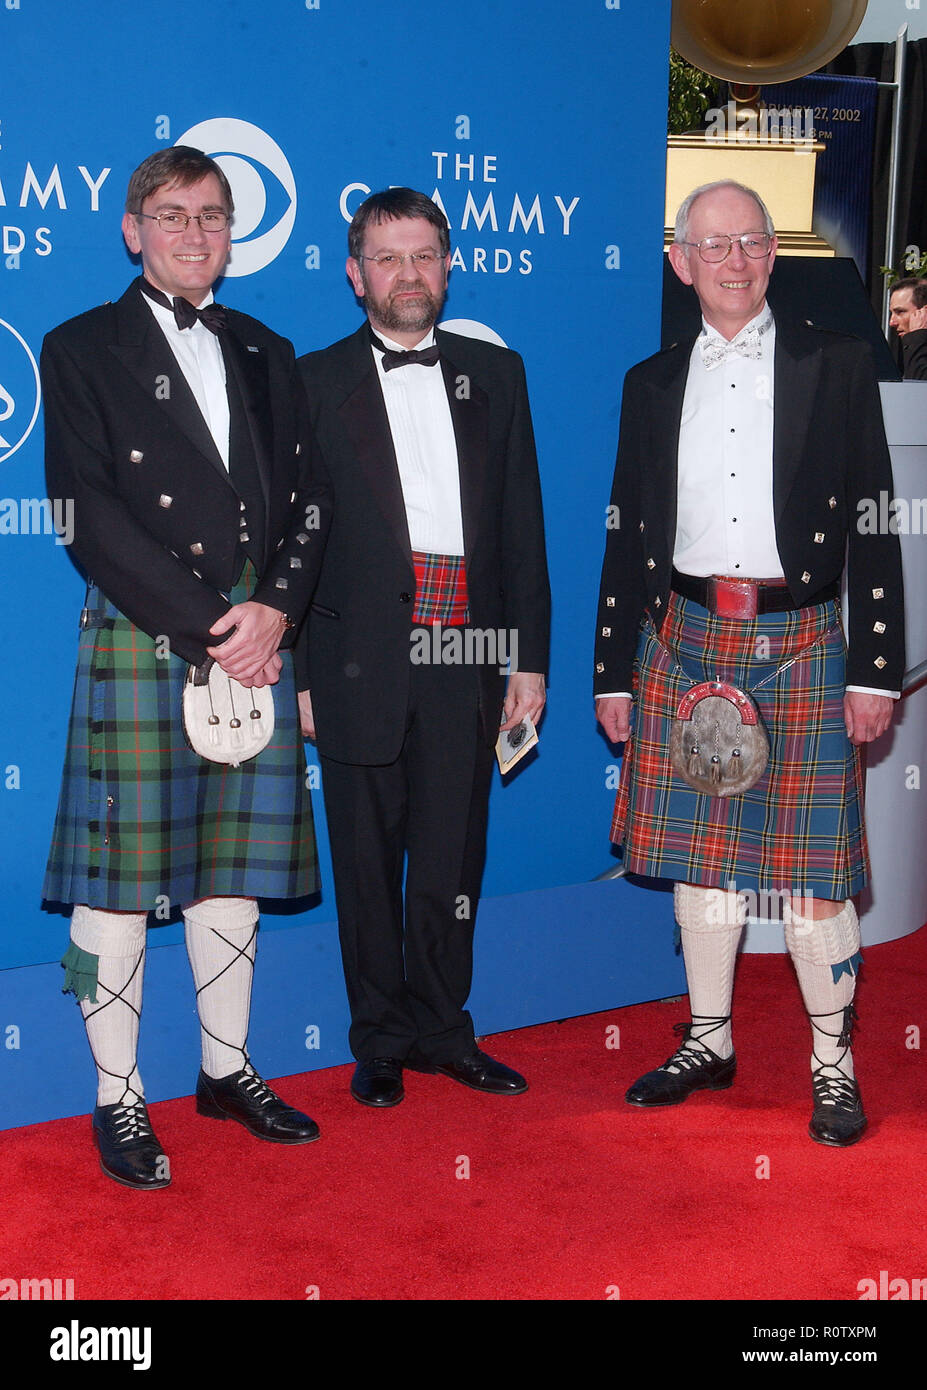 44th Annual Grammy Awards - arrival           -            BBCScottishSymphOrch01.JPGBBCScottishSymphOrch01  Event in Hollywood Life - California, Red - Stock Image